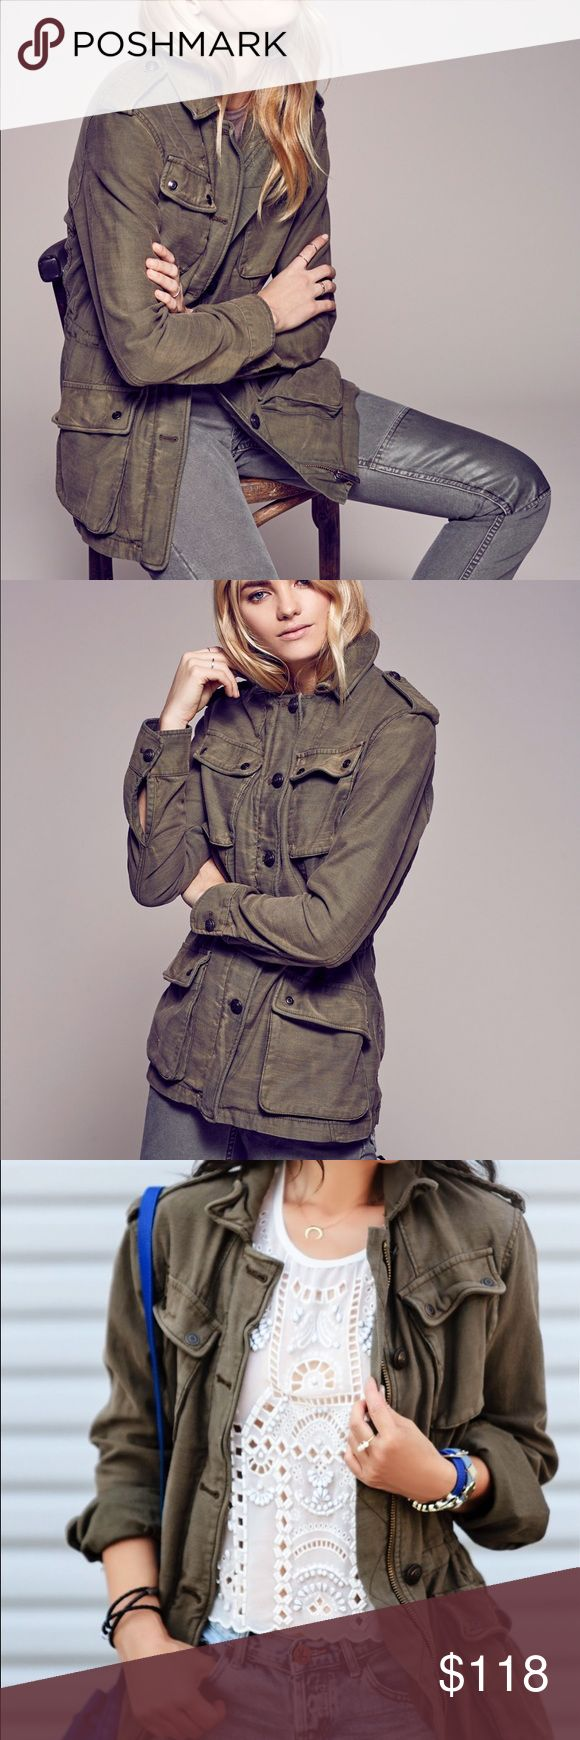 """Free People Not Your Brothers surplus jacket Beautiful """"Not Your Brothers"""" green military style surplus jacket. So gorgeous, but I just have too many of these! Worn once, in EUC, no flaws. Free People Jackets & Coats Utility Jackets"""